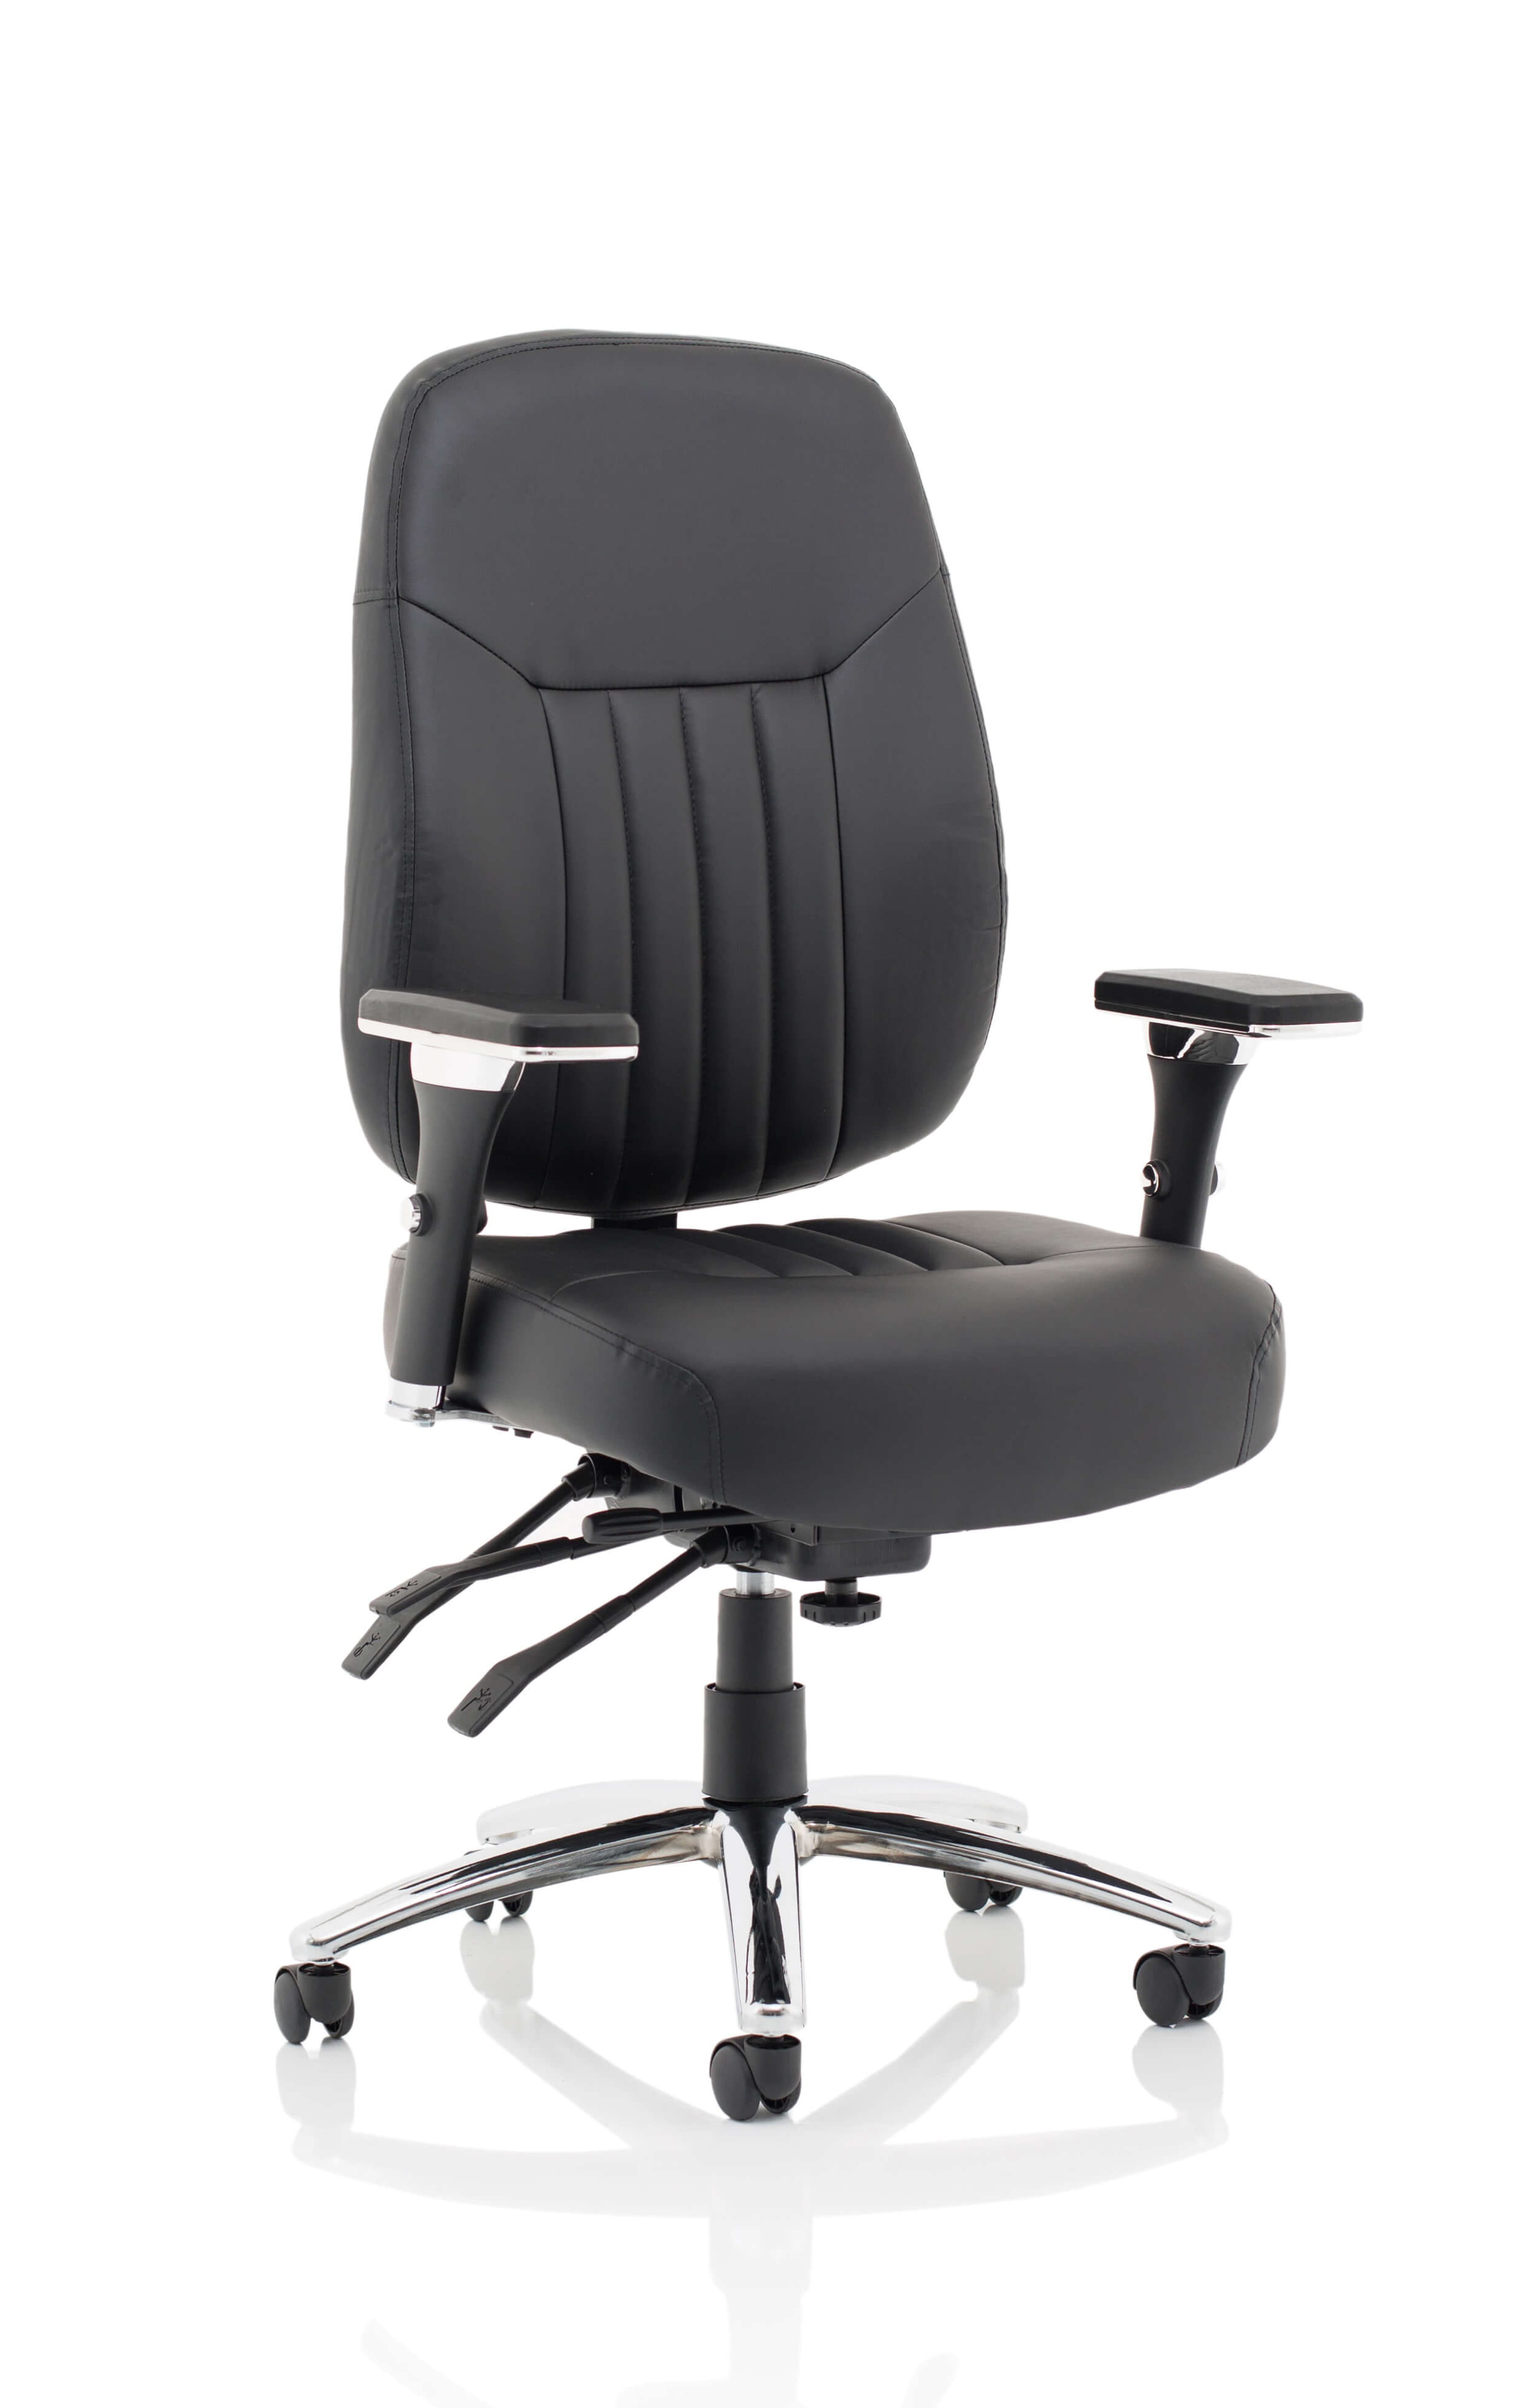 Barcelona Deluxe Office Chair